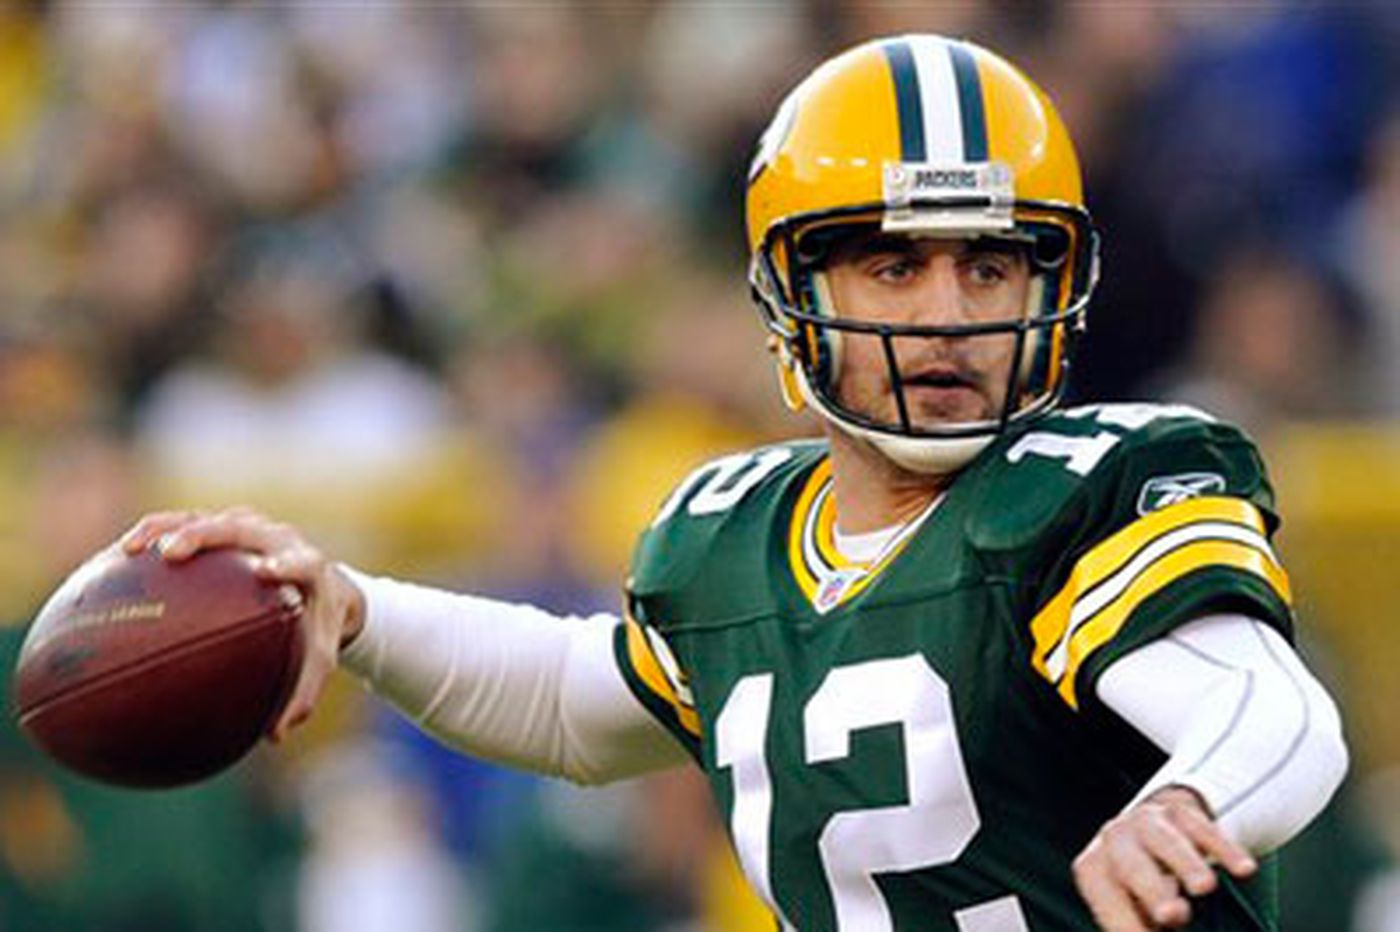 The beat goes on: Packers hit 13-0